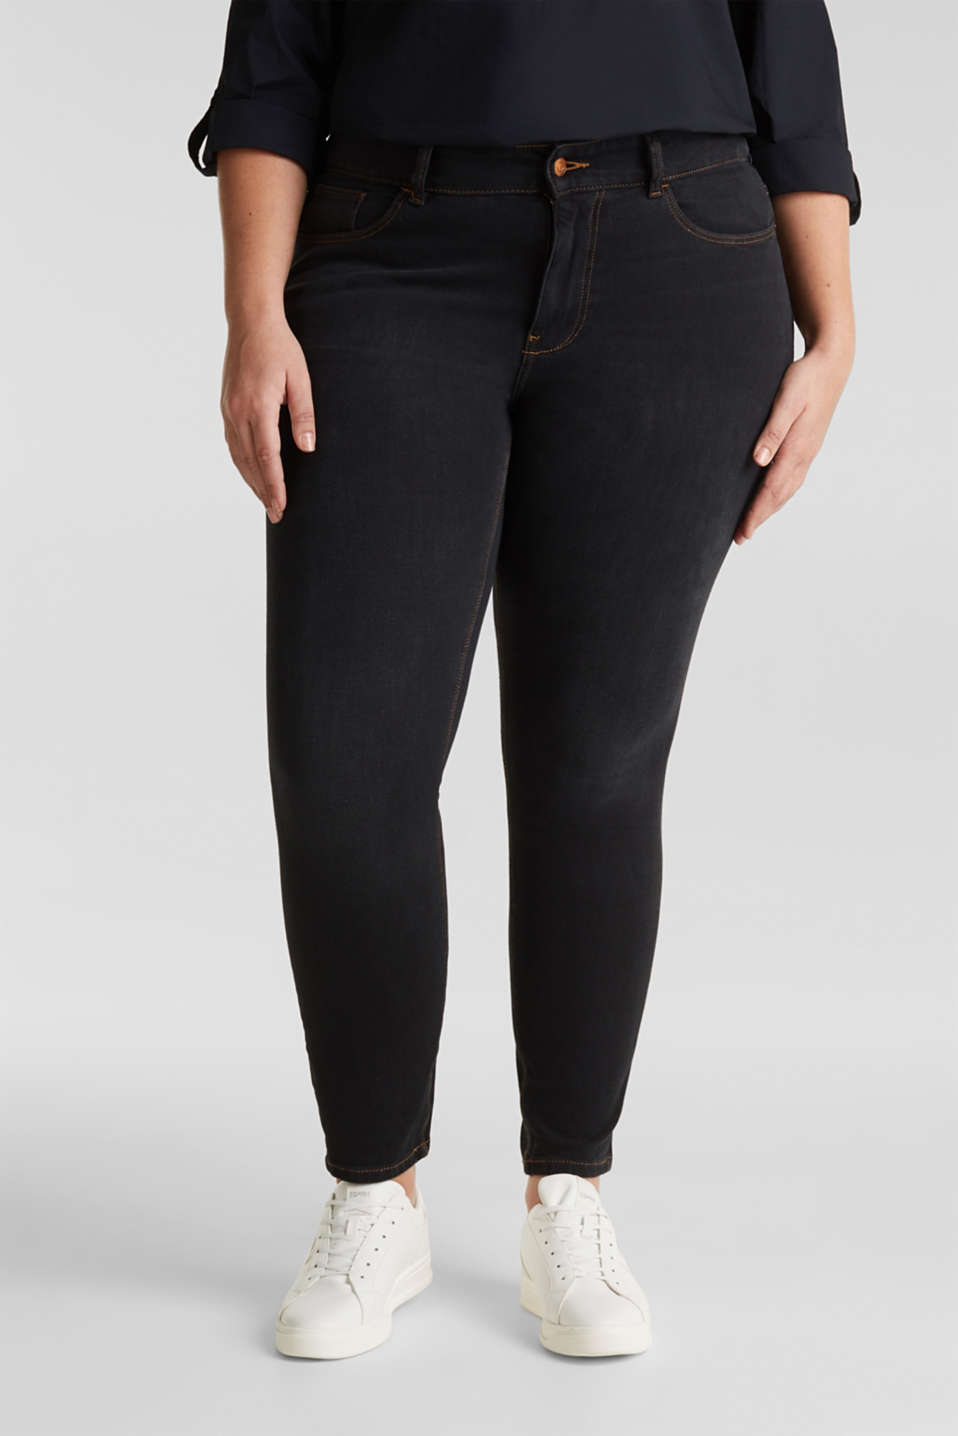 CURVY two-way stretch jeans, BLACK DARK WASH, detail image number 6